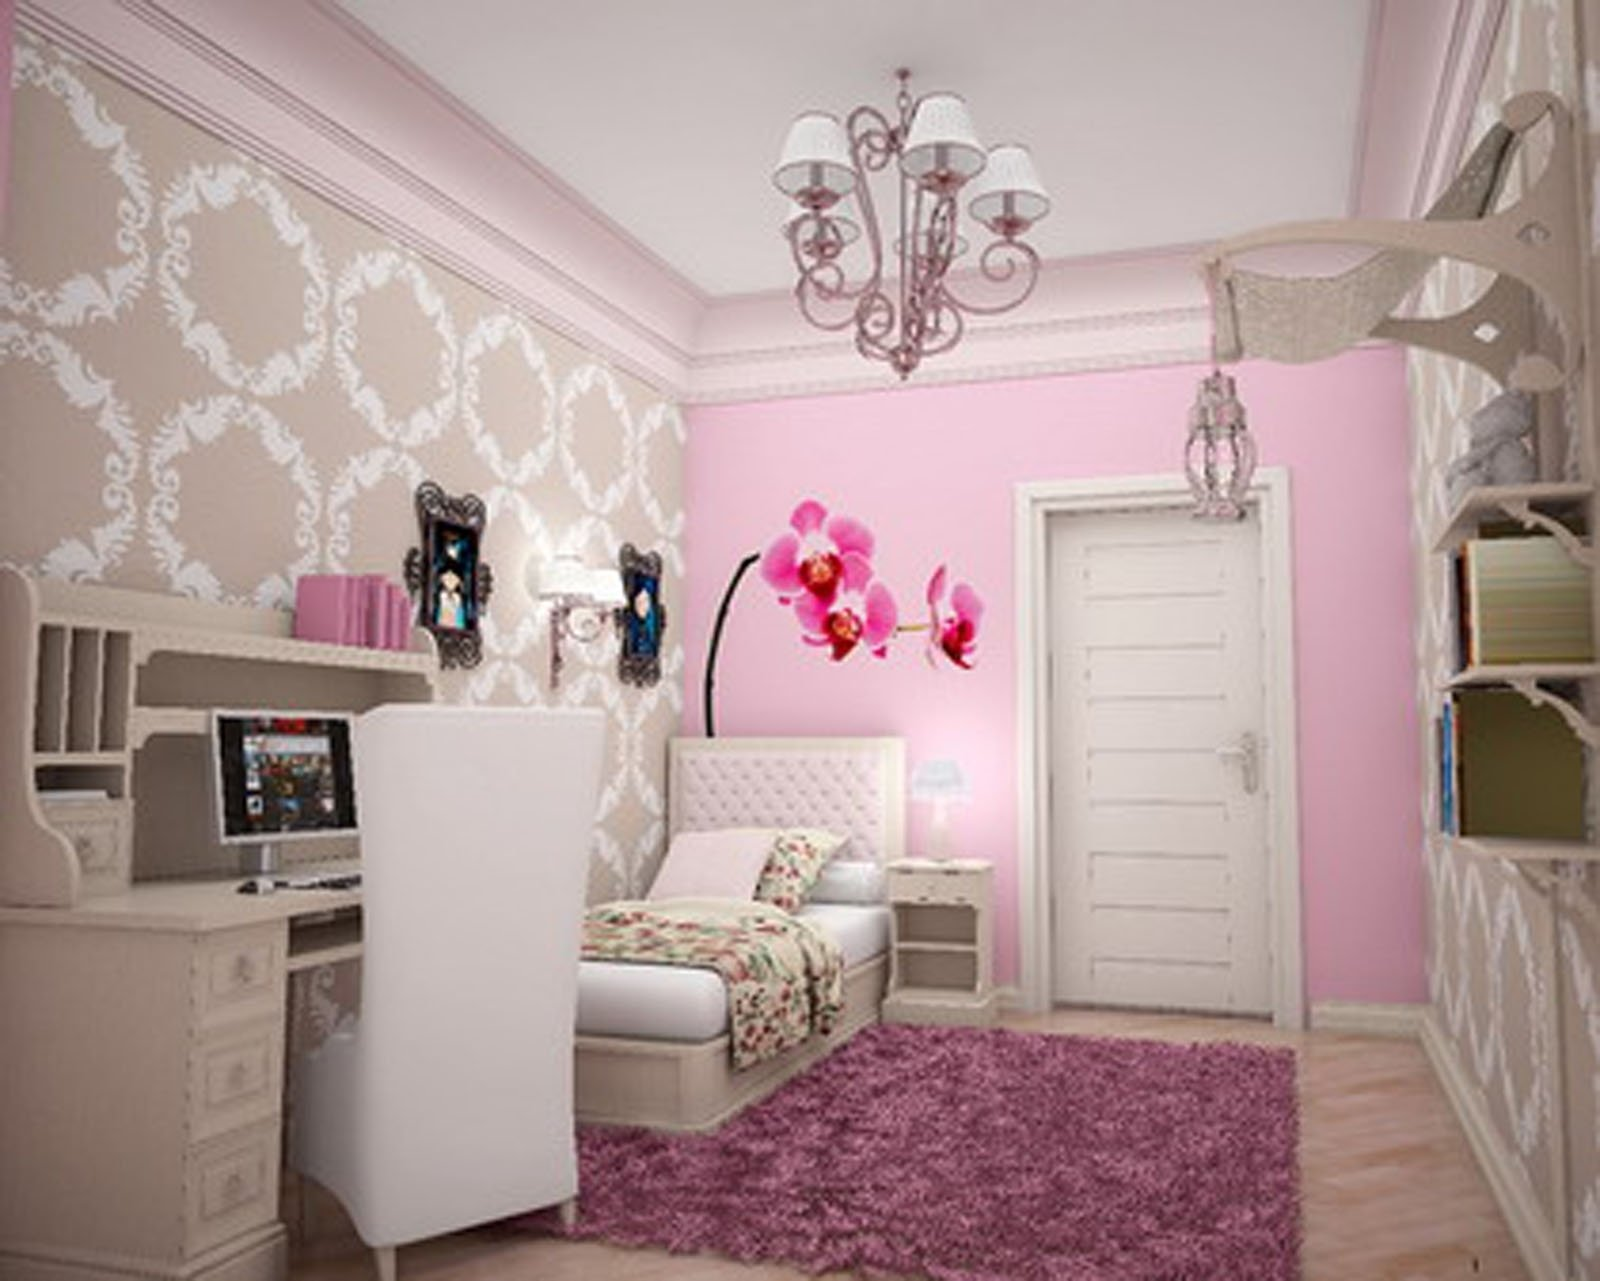 10 Pretty Teenage Bedroom Ideas For Small Rooms teenage bedroom ideas small rooms e280a2 bedroom ideas 2020